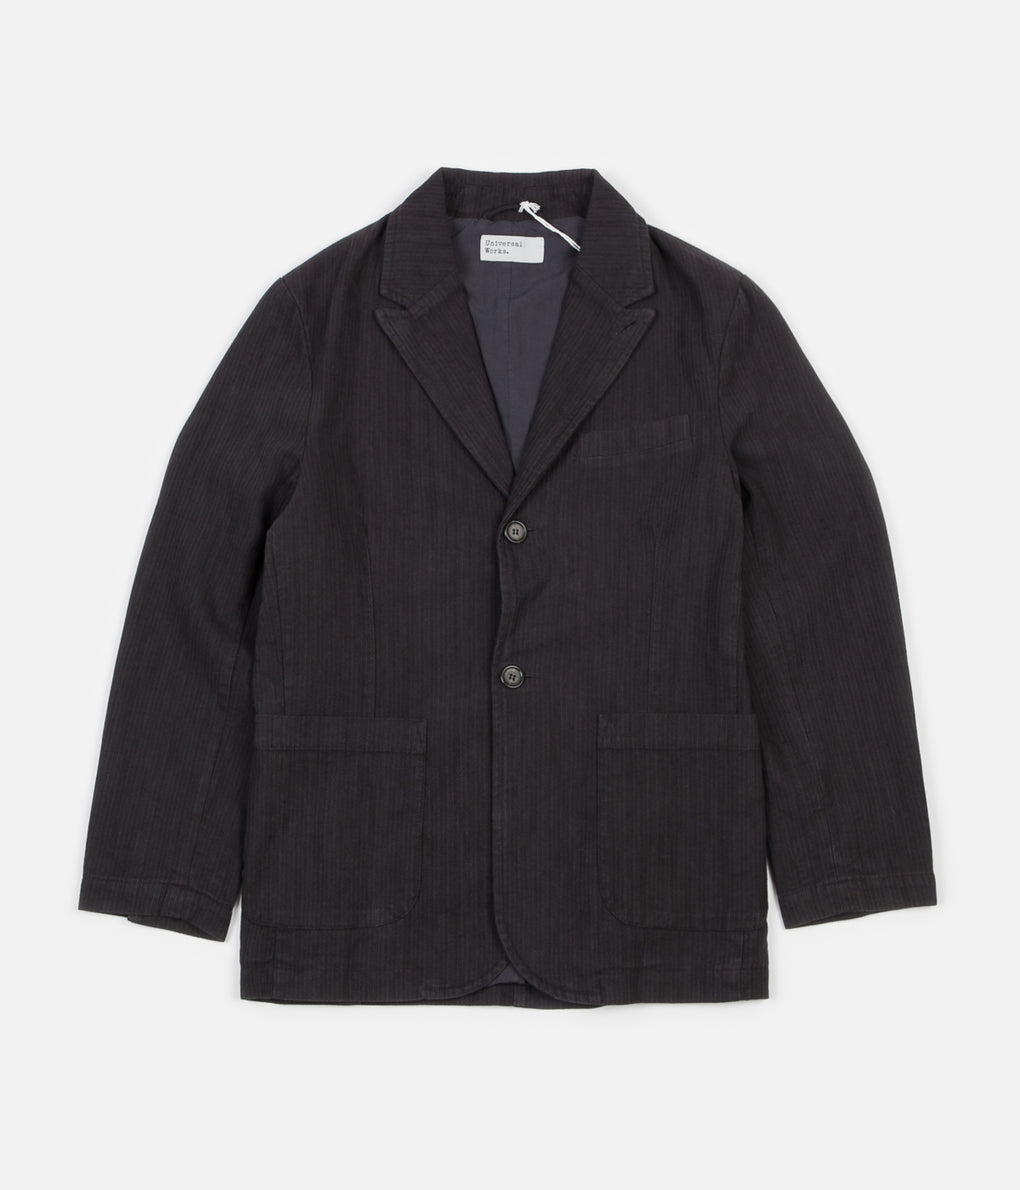 Universal Works Peak Lapel Jacket - Charcoal